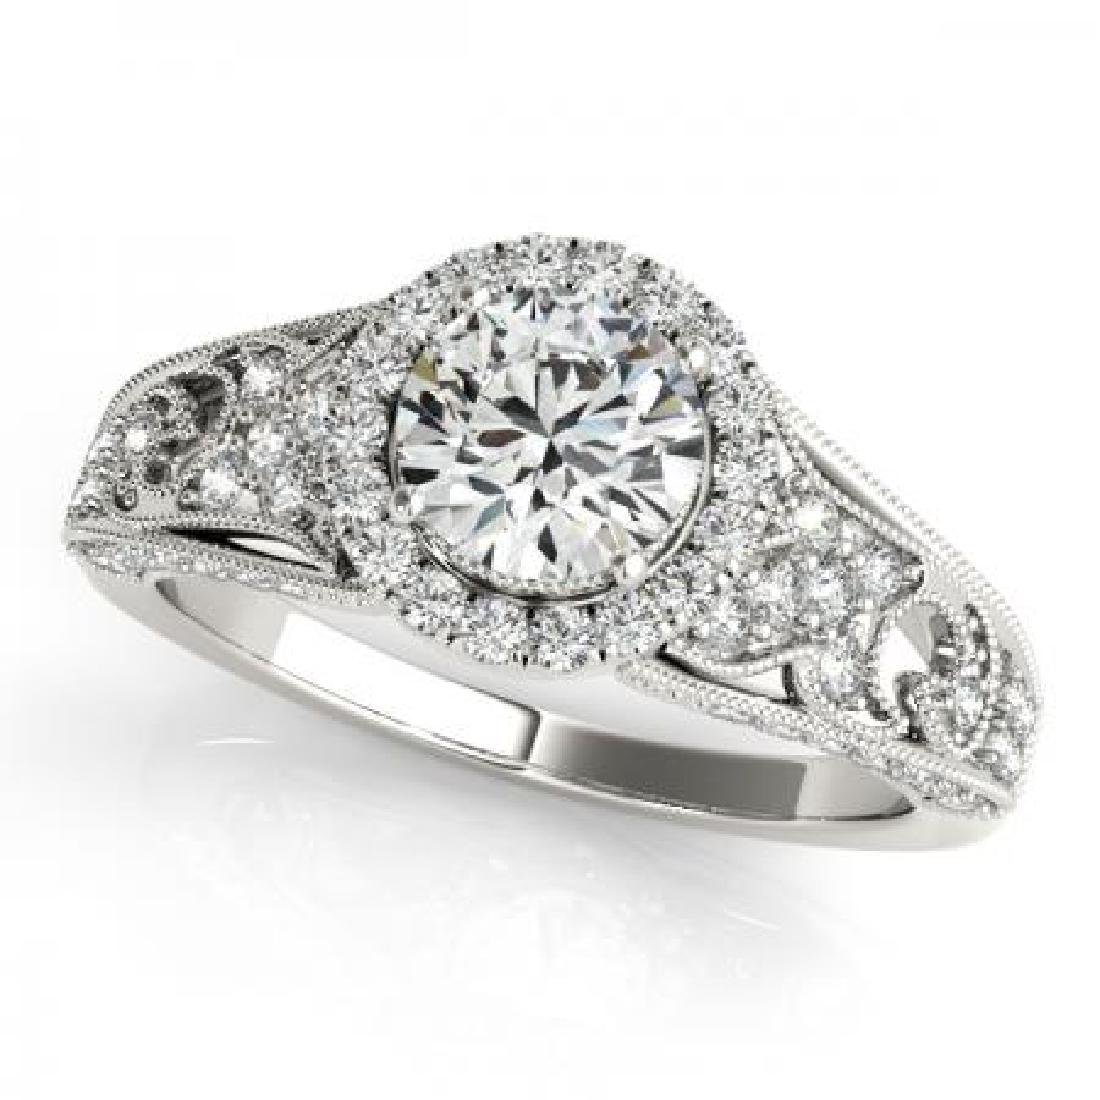 CERTIFIED PLATINUM 1.31 CT G-H/VS-SI1 DIAMOND HALO ENGA